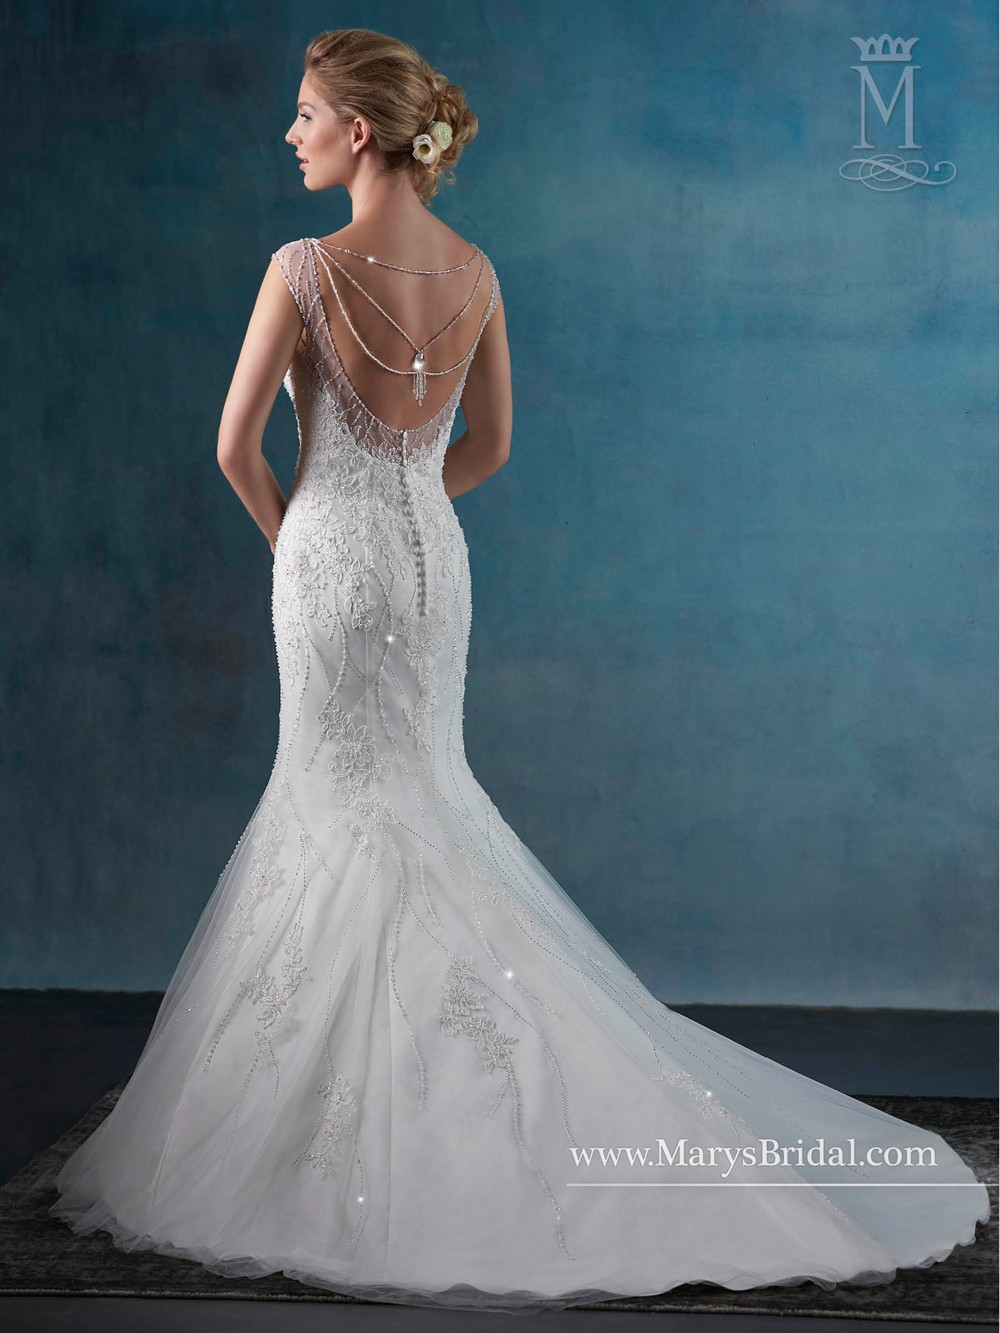 Mary's Bridal 6559 - Clearance Price : 1095$